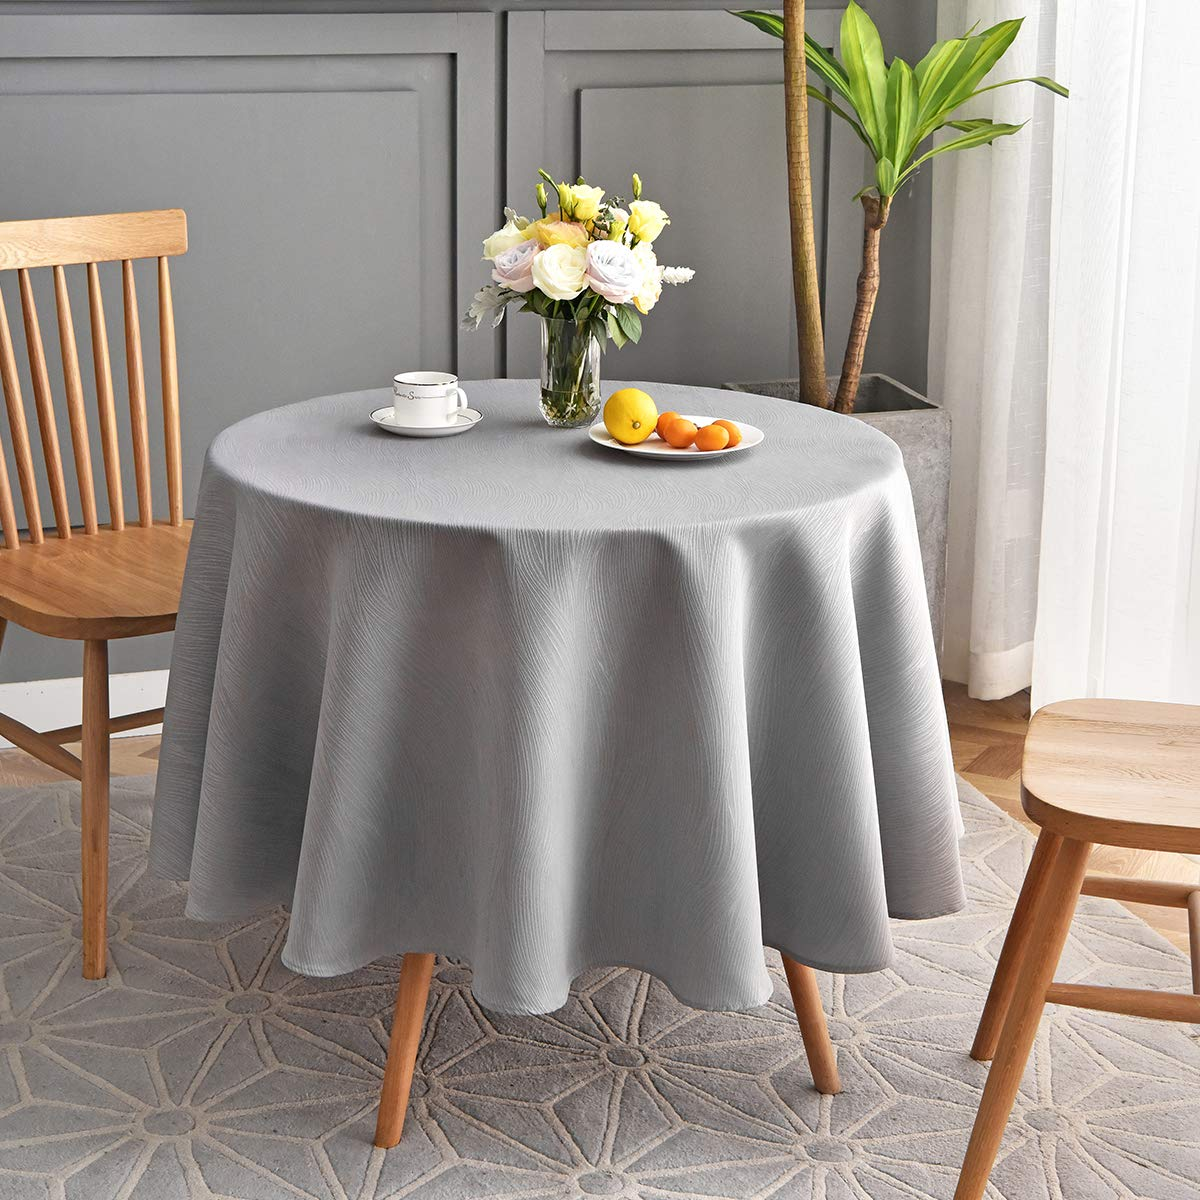 maxmill Round Jacquard Tablecloths Swirl Pattern Spillproof Wrinkle Free Heavy Weight Soft Table Cloth for Circular Table Cover of Buffet Banquet Parties Holiday Dinner Round 90 Inch Light Grey by maxmill